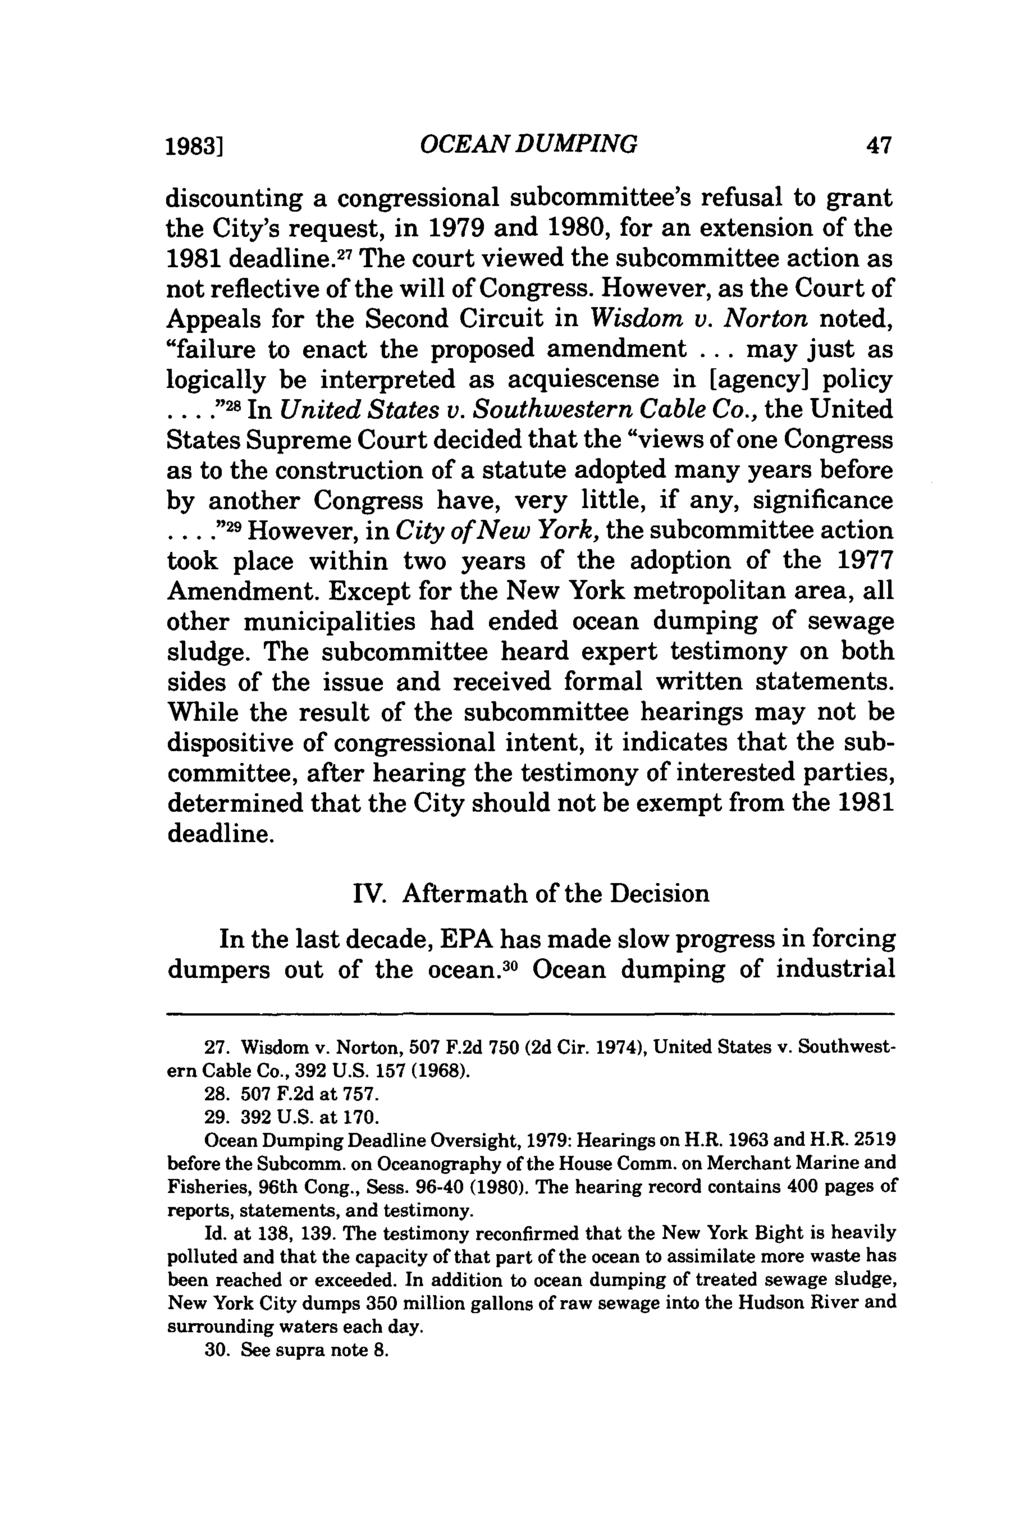 1983] OCEAN DUMPING discounting a congressional subcommittee's refusal to grant the City's request, in 1979 and 1980, for an extension of the 1981 deadline.